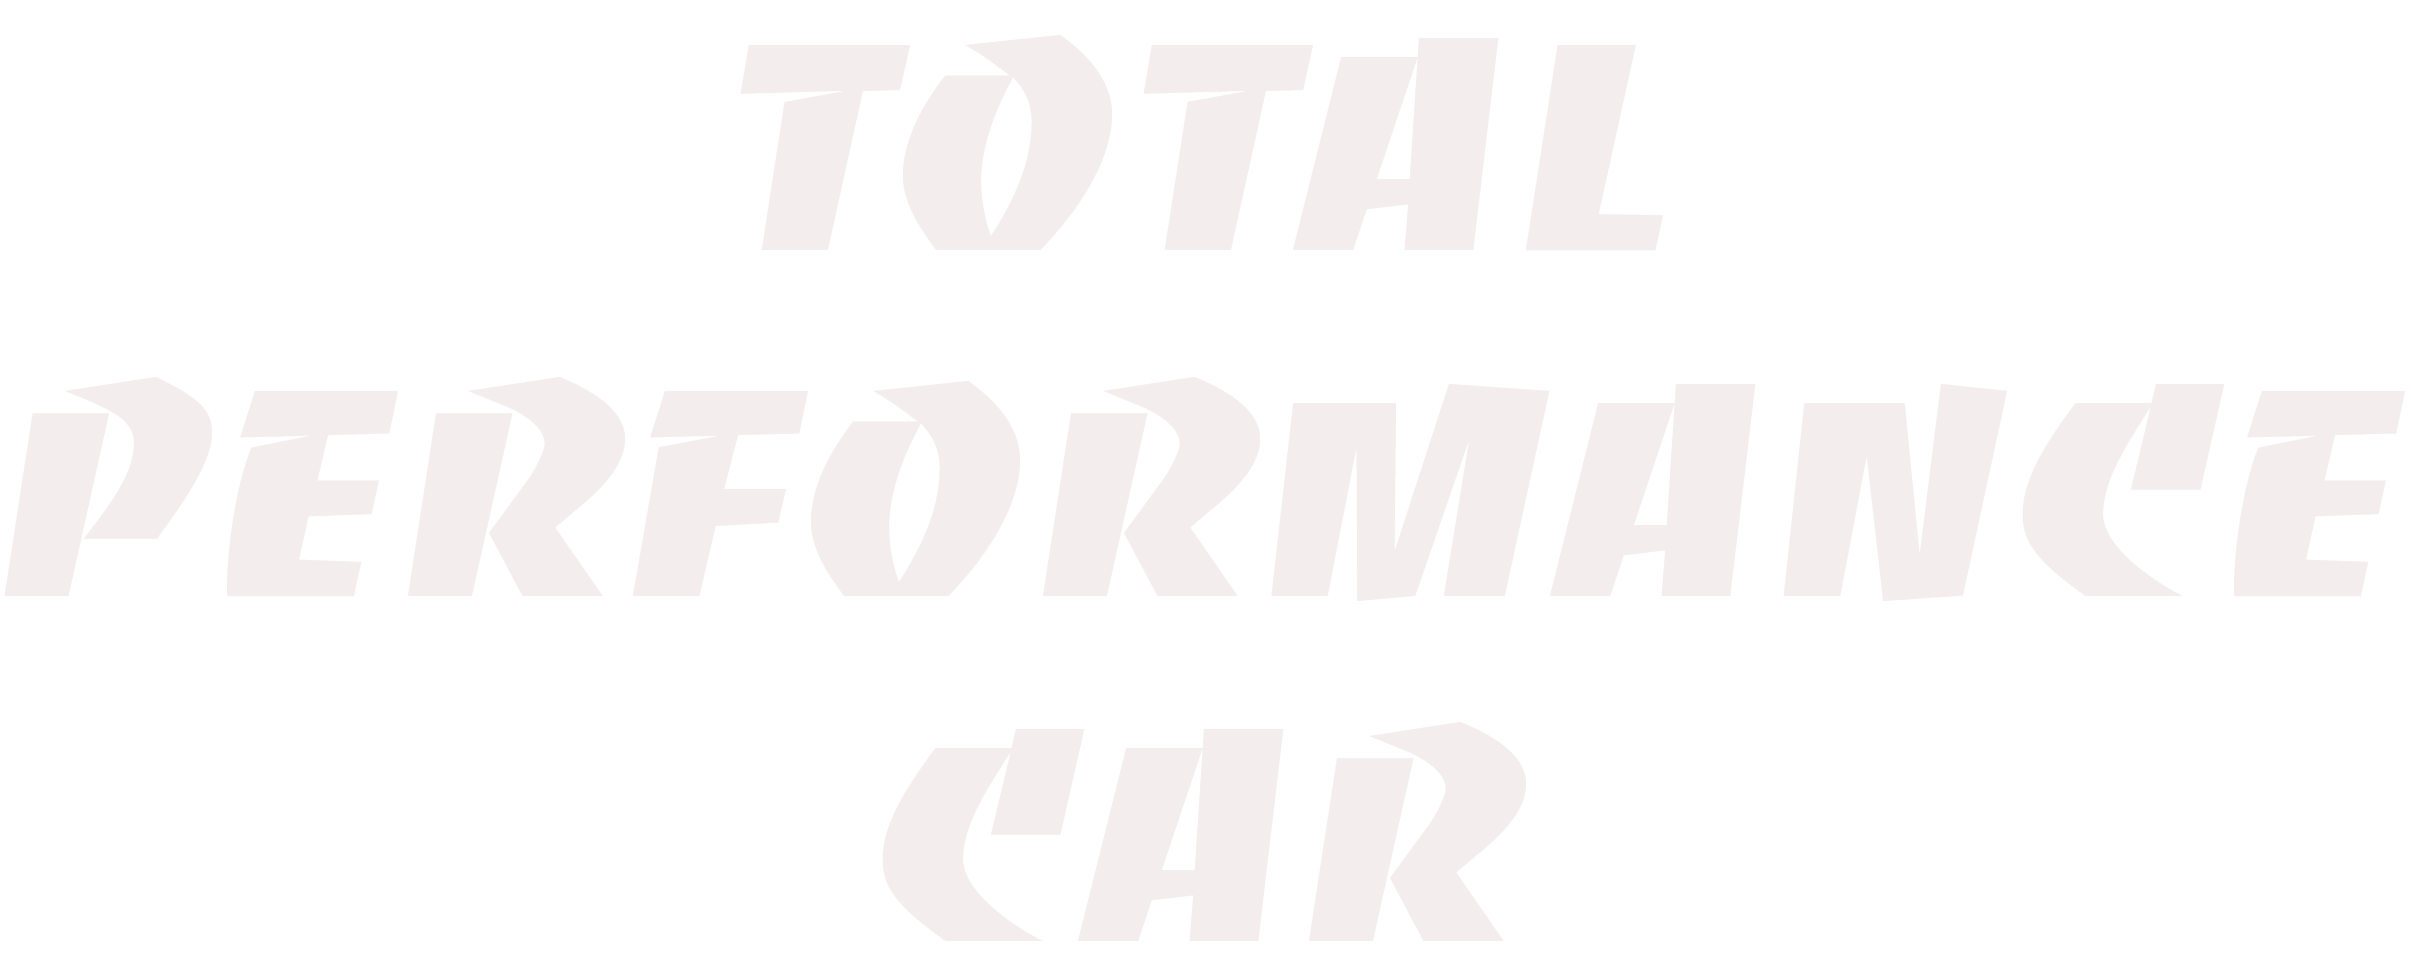 Totalperformancecar